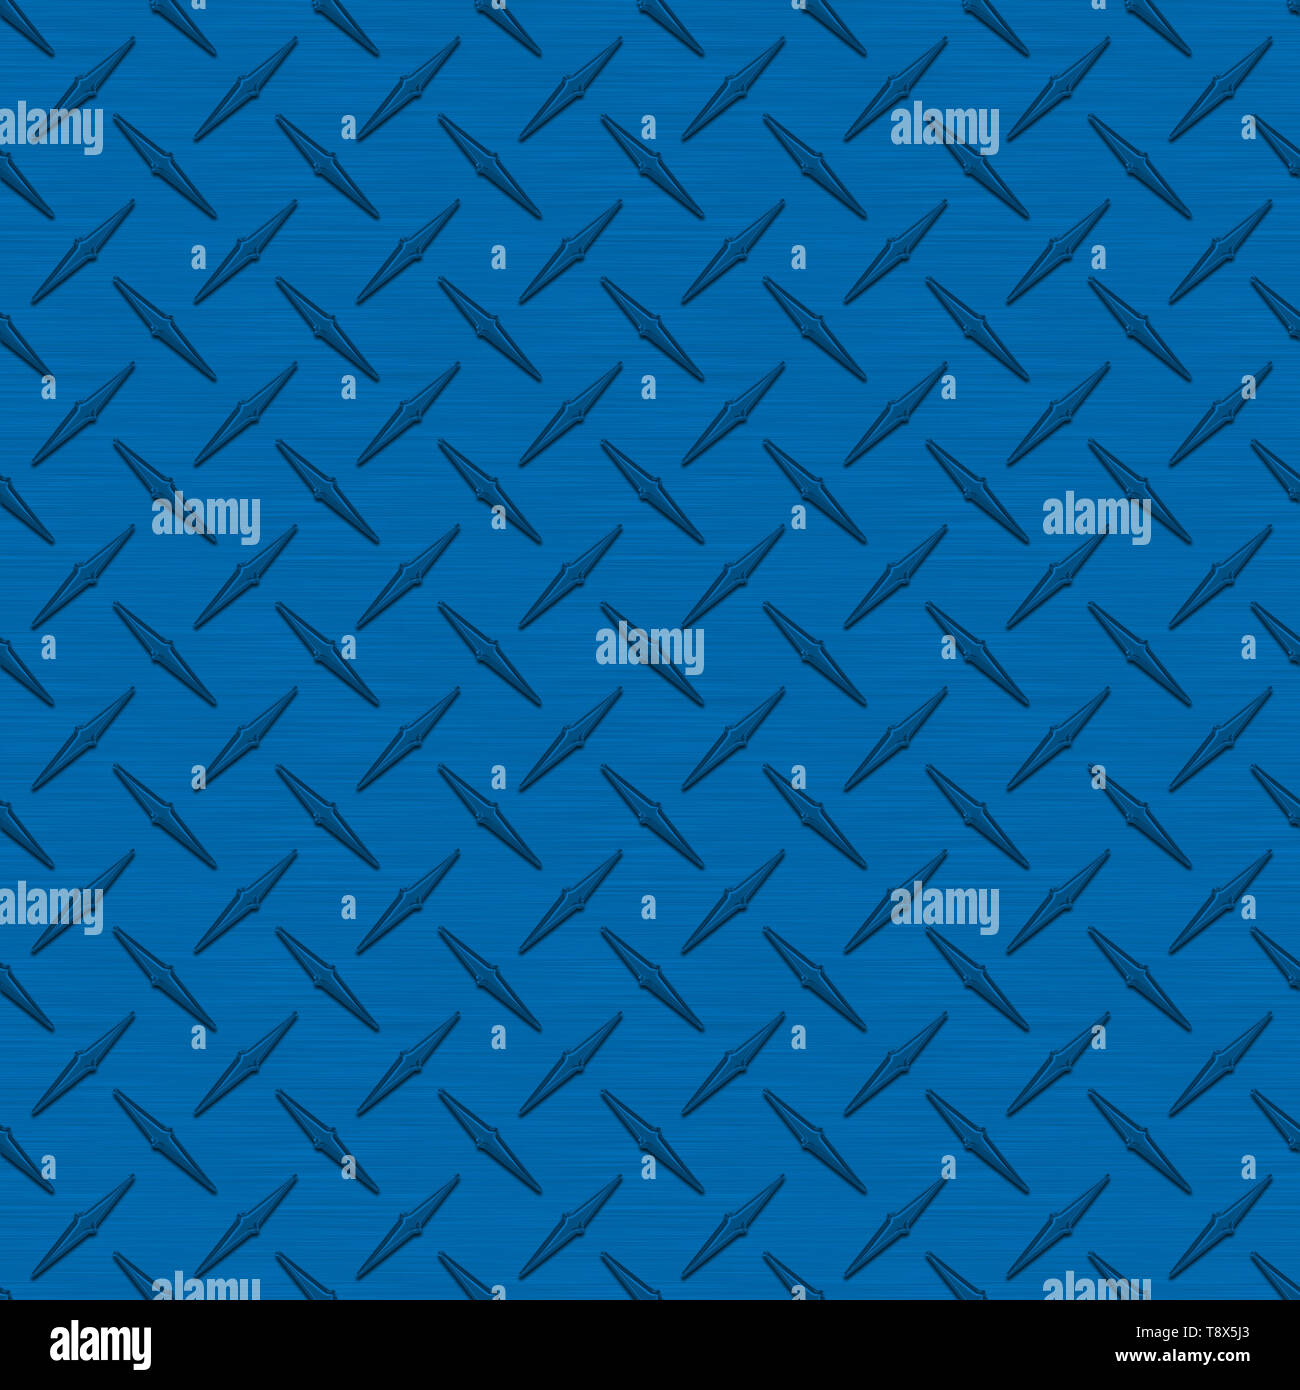 Medium Blue Diamond Plate Metal Seamless Texture Tile - Stock Image